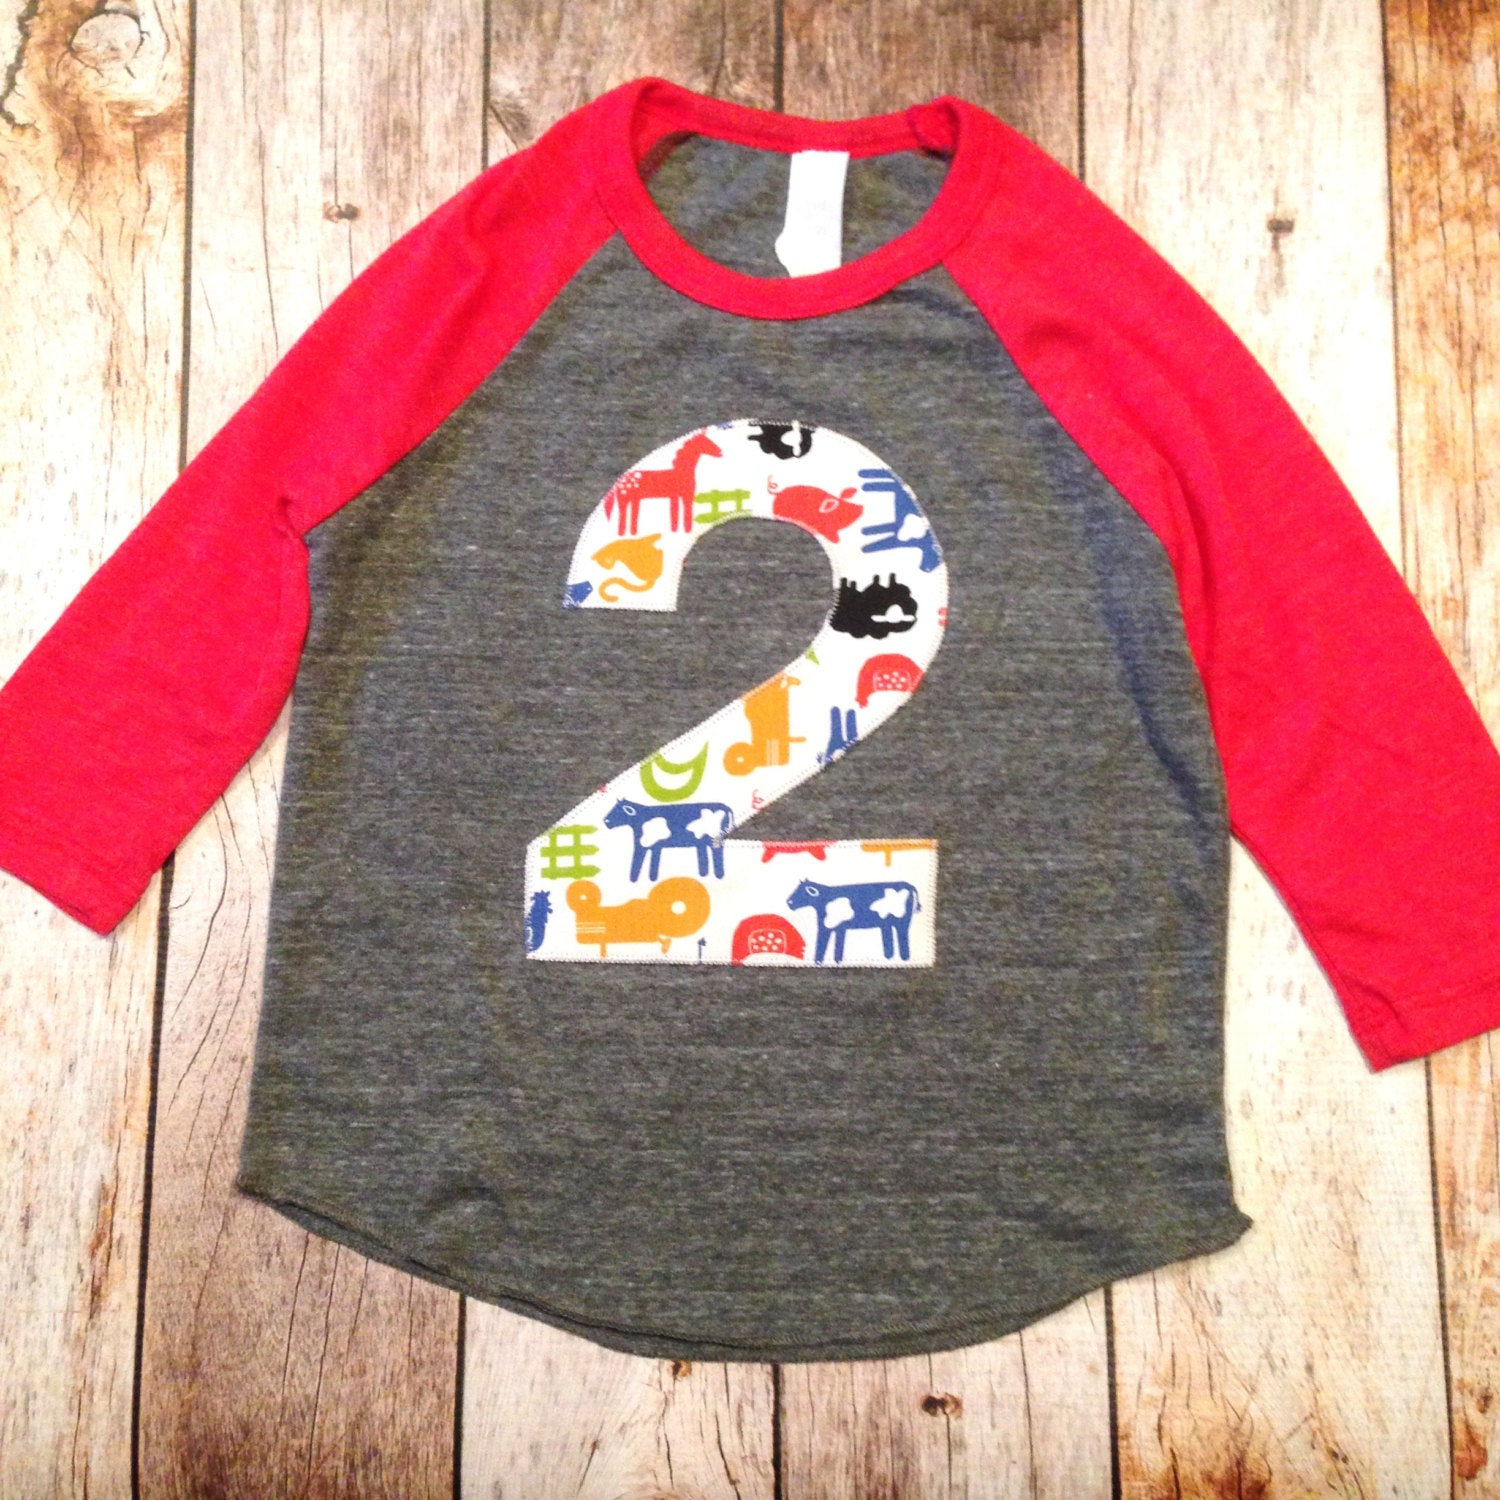 3 Farm Barn Birthday Shirt Eco Heathered Red Grey Boys 2 Old Cow Print Hide